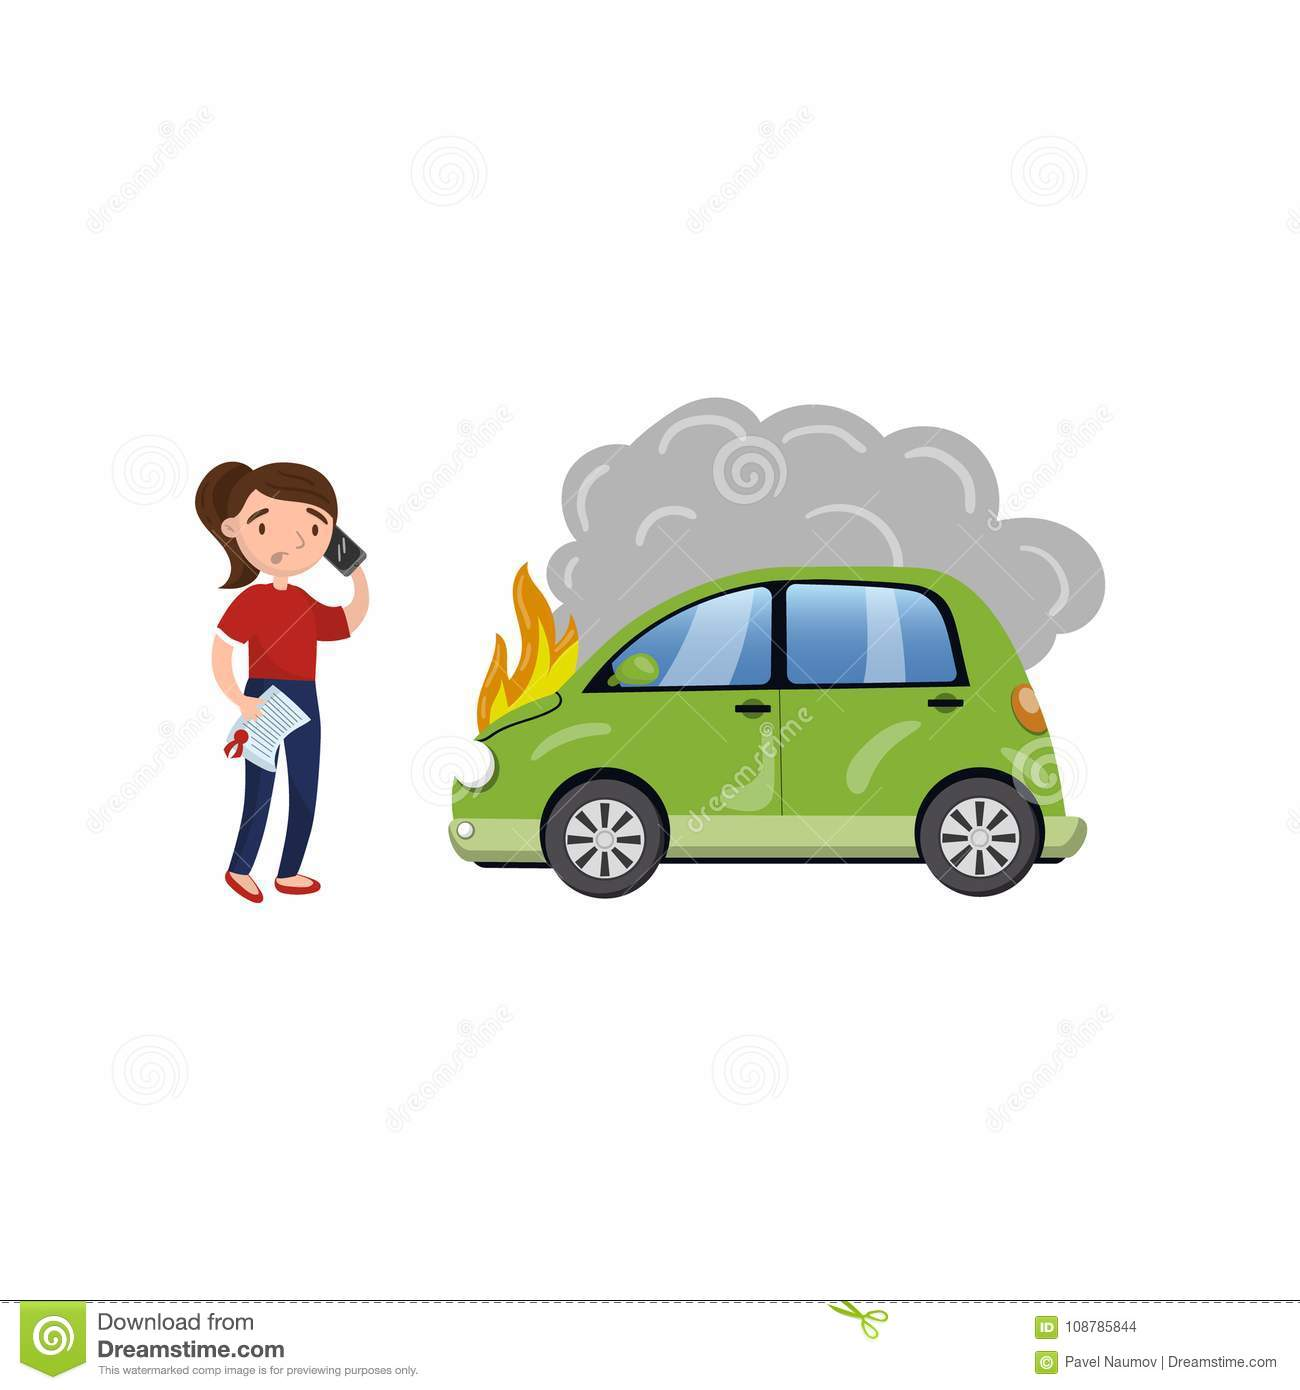 Female Driver Calling For Help After Car Accident Burning Car Car Insurance Cartoon Vector Illustration Stock Vector Illustration Of Automobile People 108785844